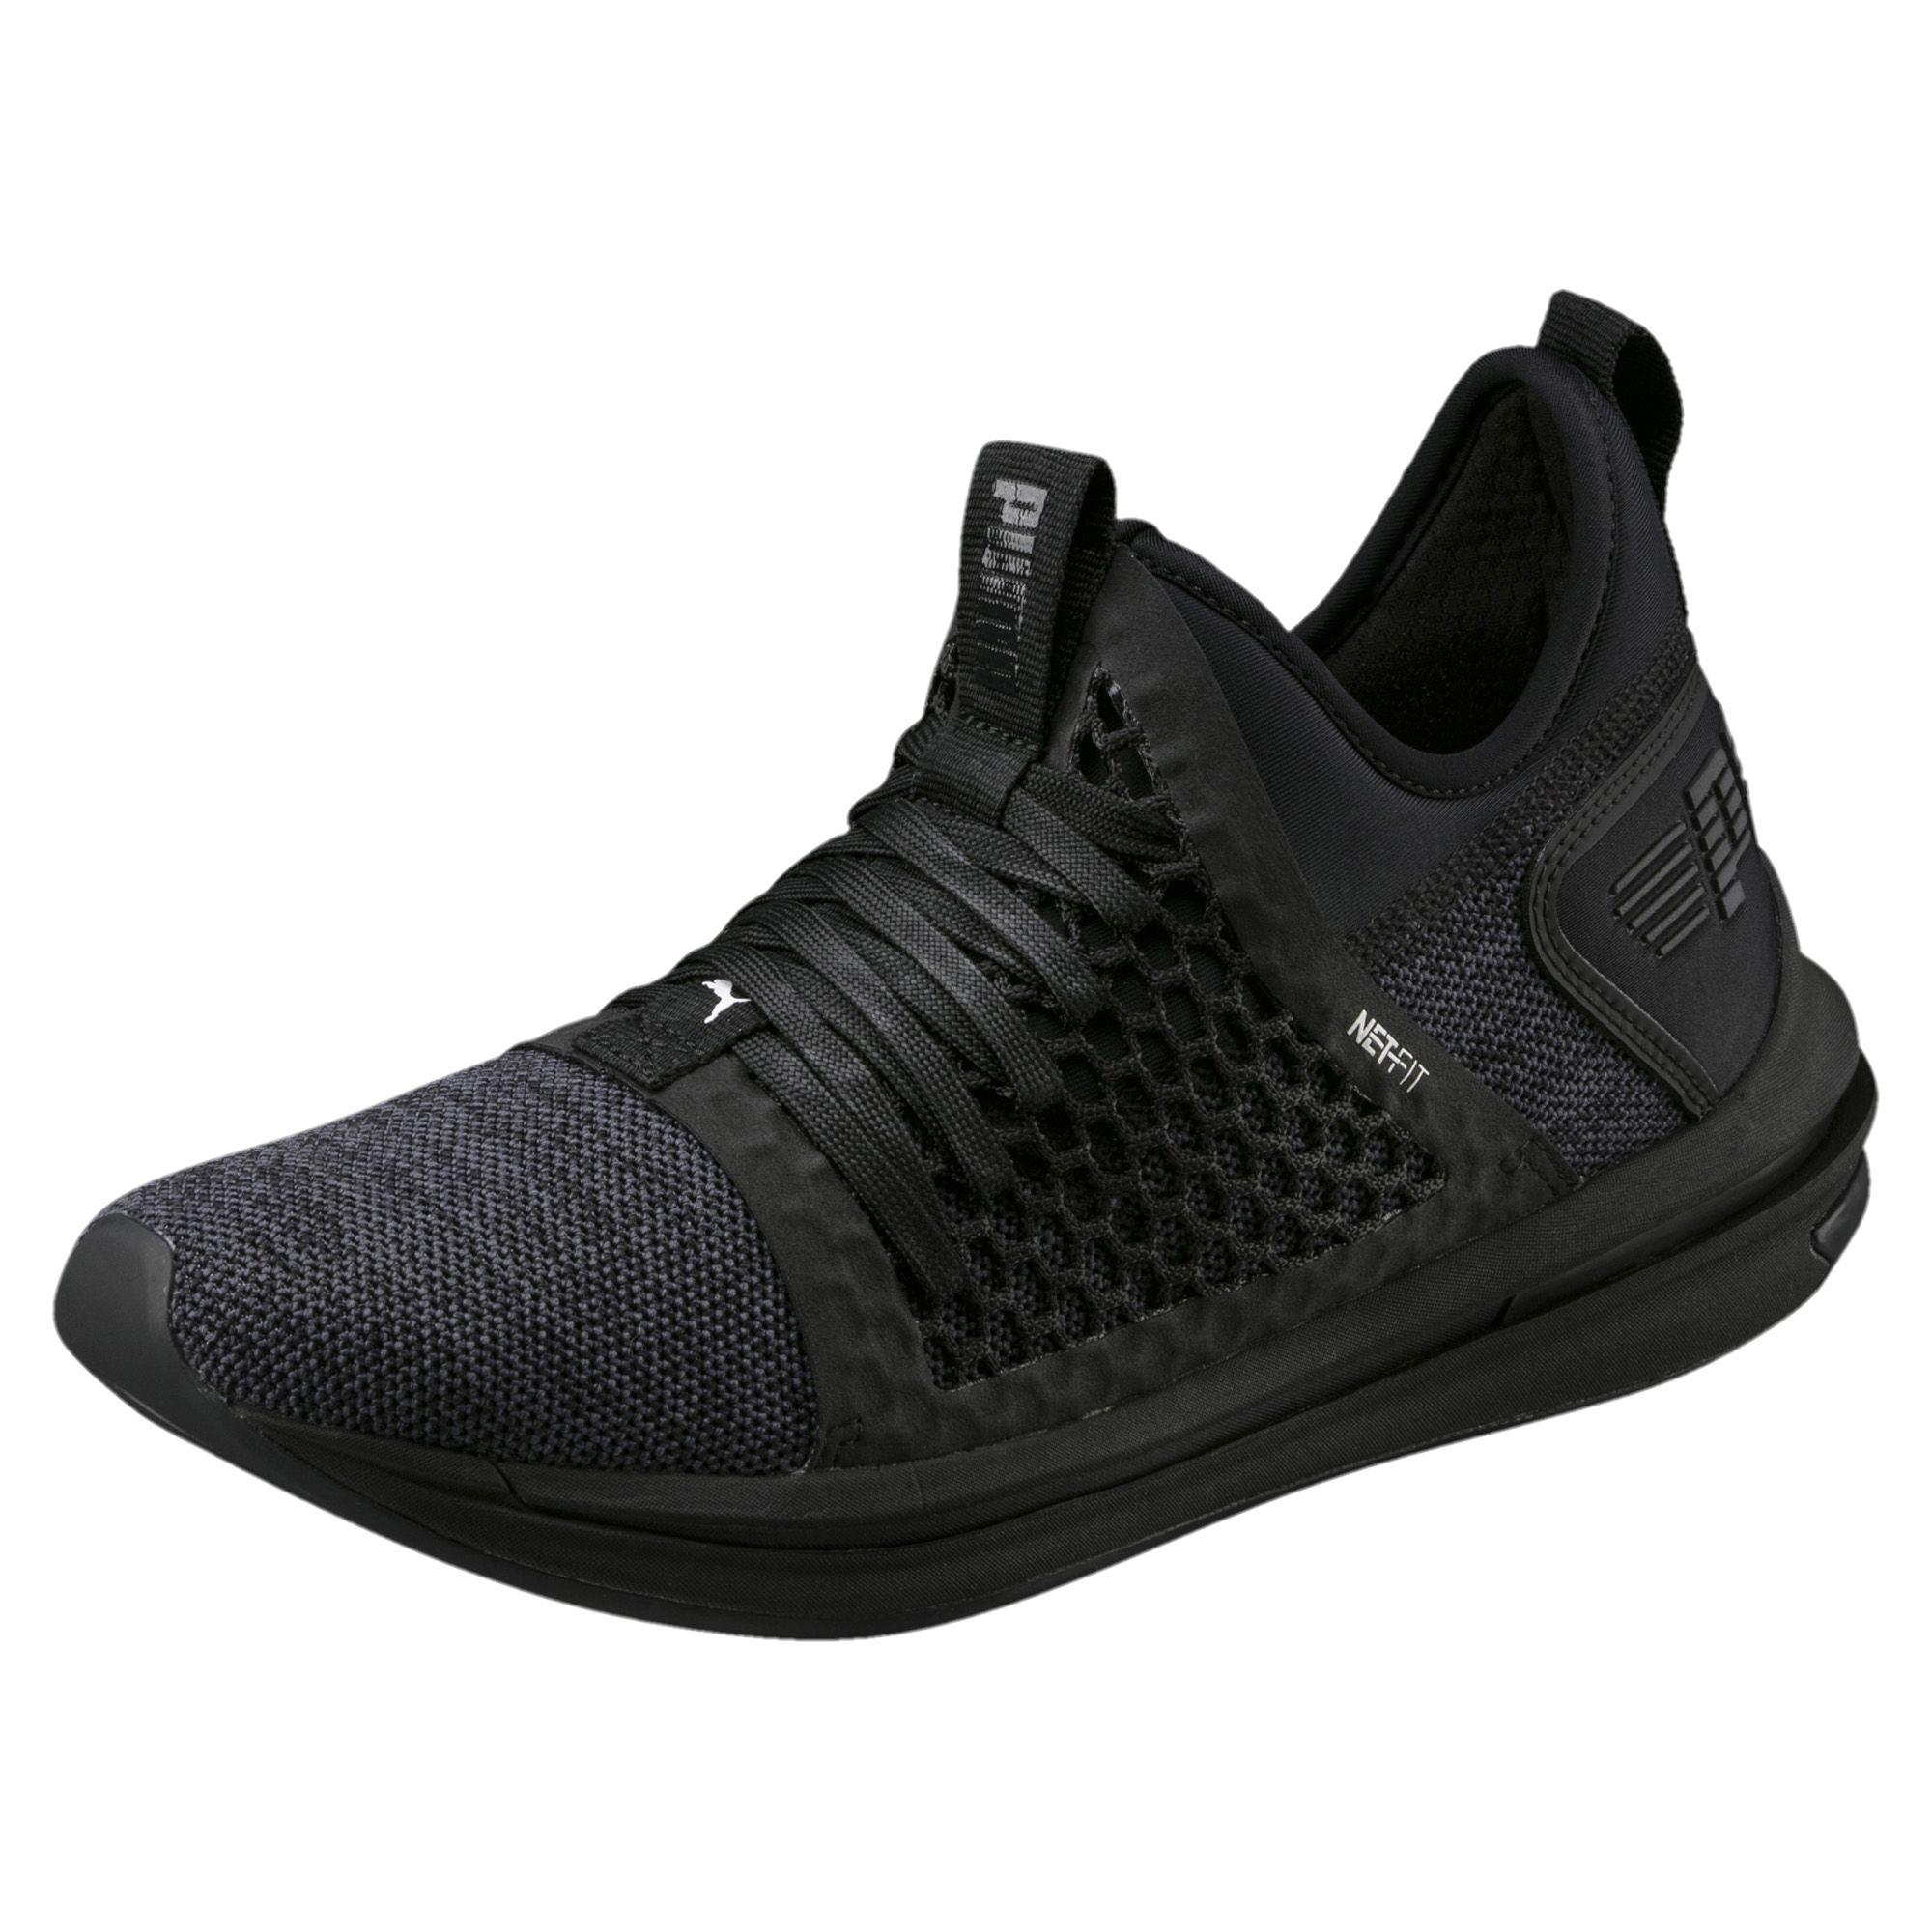 Lyst puma ignite limitless netfit street mens running shoes jpg 2000x2000  Converse patent leather pumas e5aec4a52